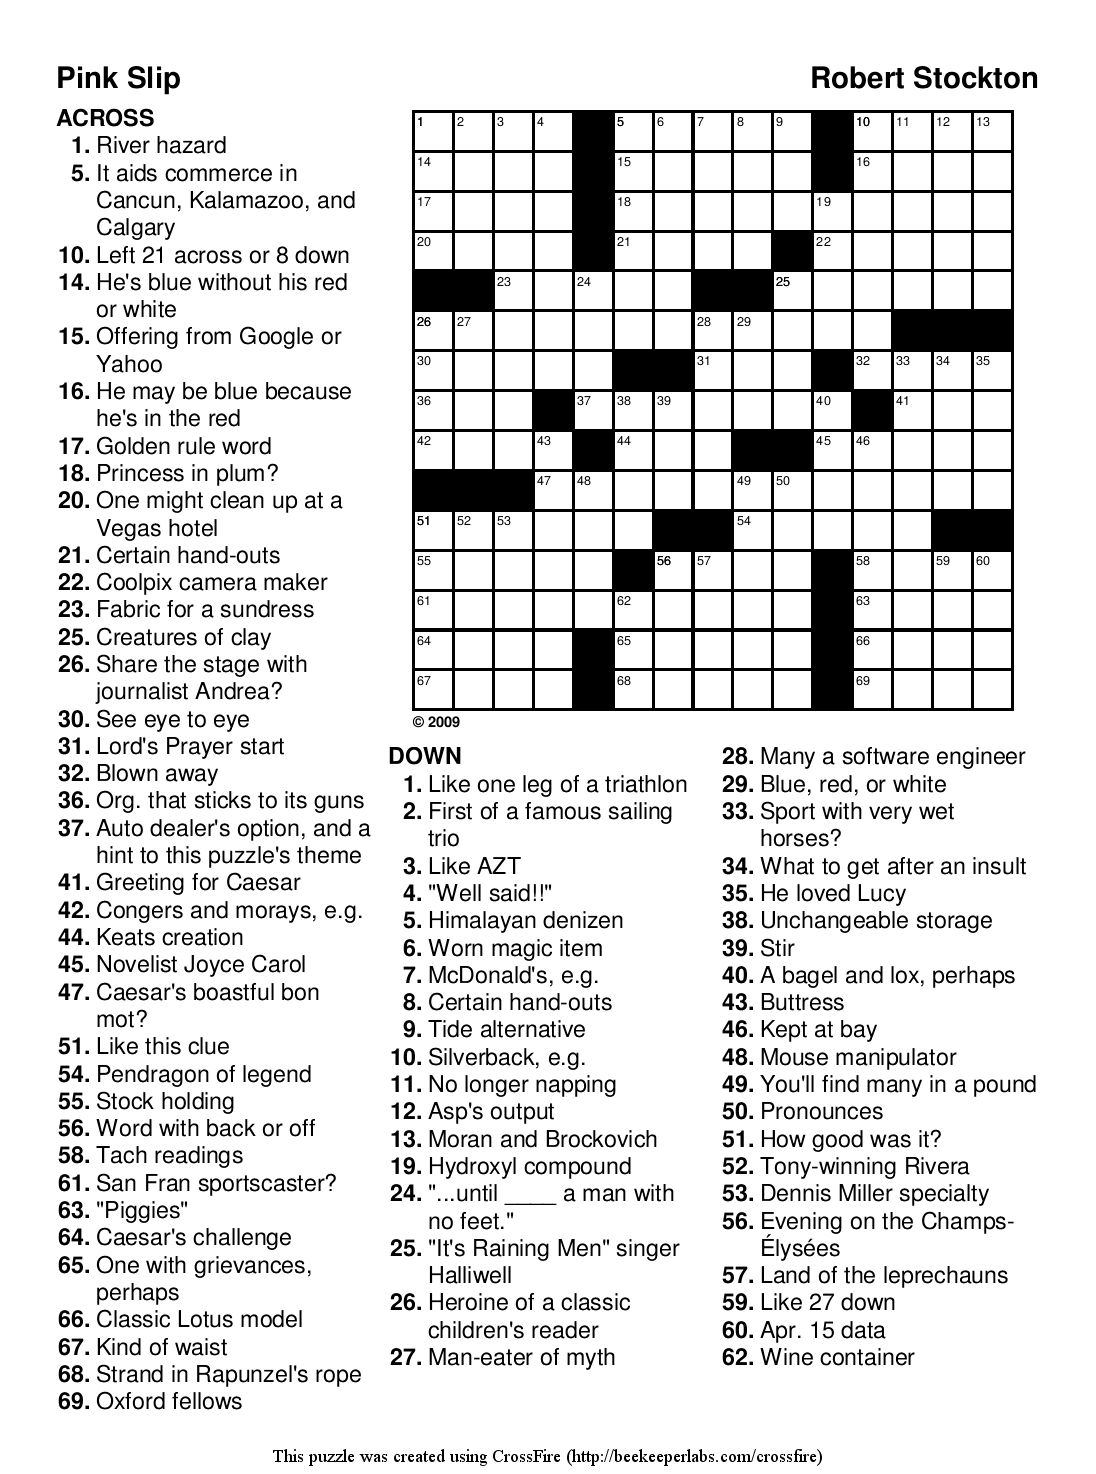 This is a graphic of Resource Easy Crosswords Printable